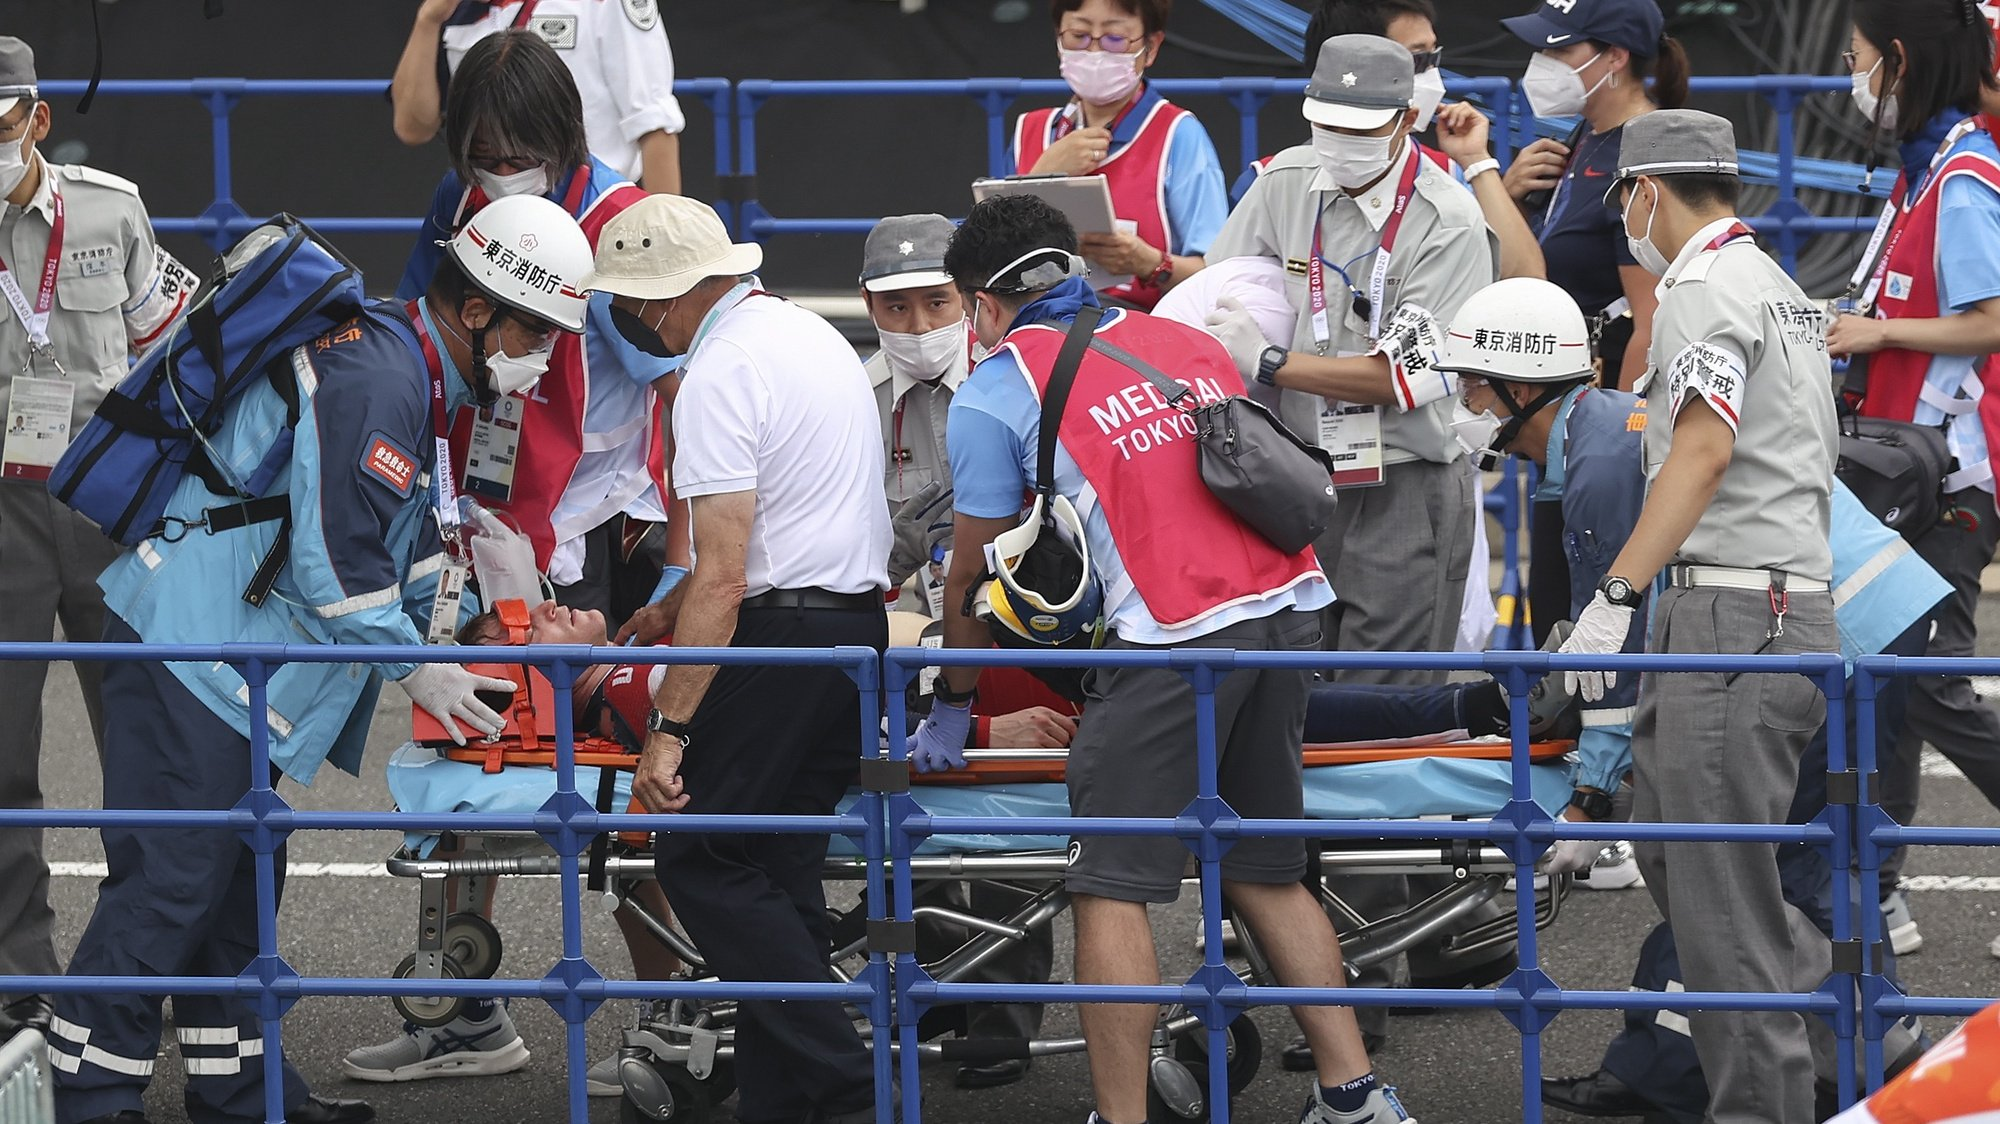 epa09378670 Connor Fields (C) of USA receives medical attention after crashing at the Men's Cycling BMX Racing semifinal during the Cycling BMX Racing events of the Tokyo 2020 Olympic Games at the Ariake Urban Sports Park in Tokyo, Japan, 30 July 2021.  EPA/FAZRY ISMAIL